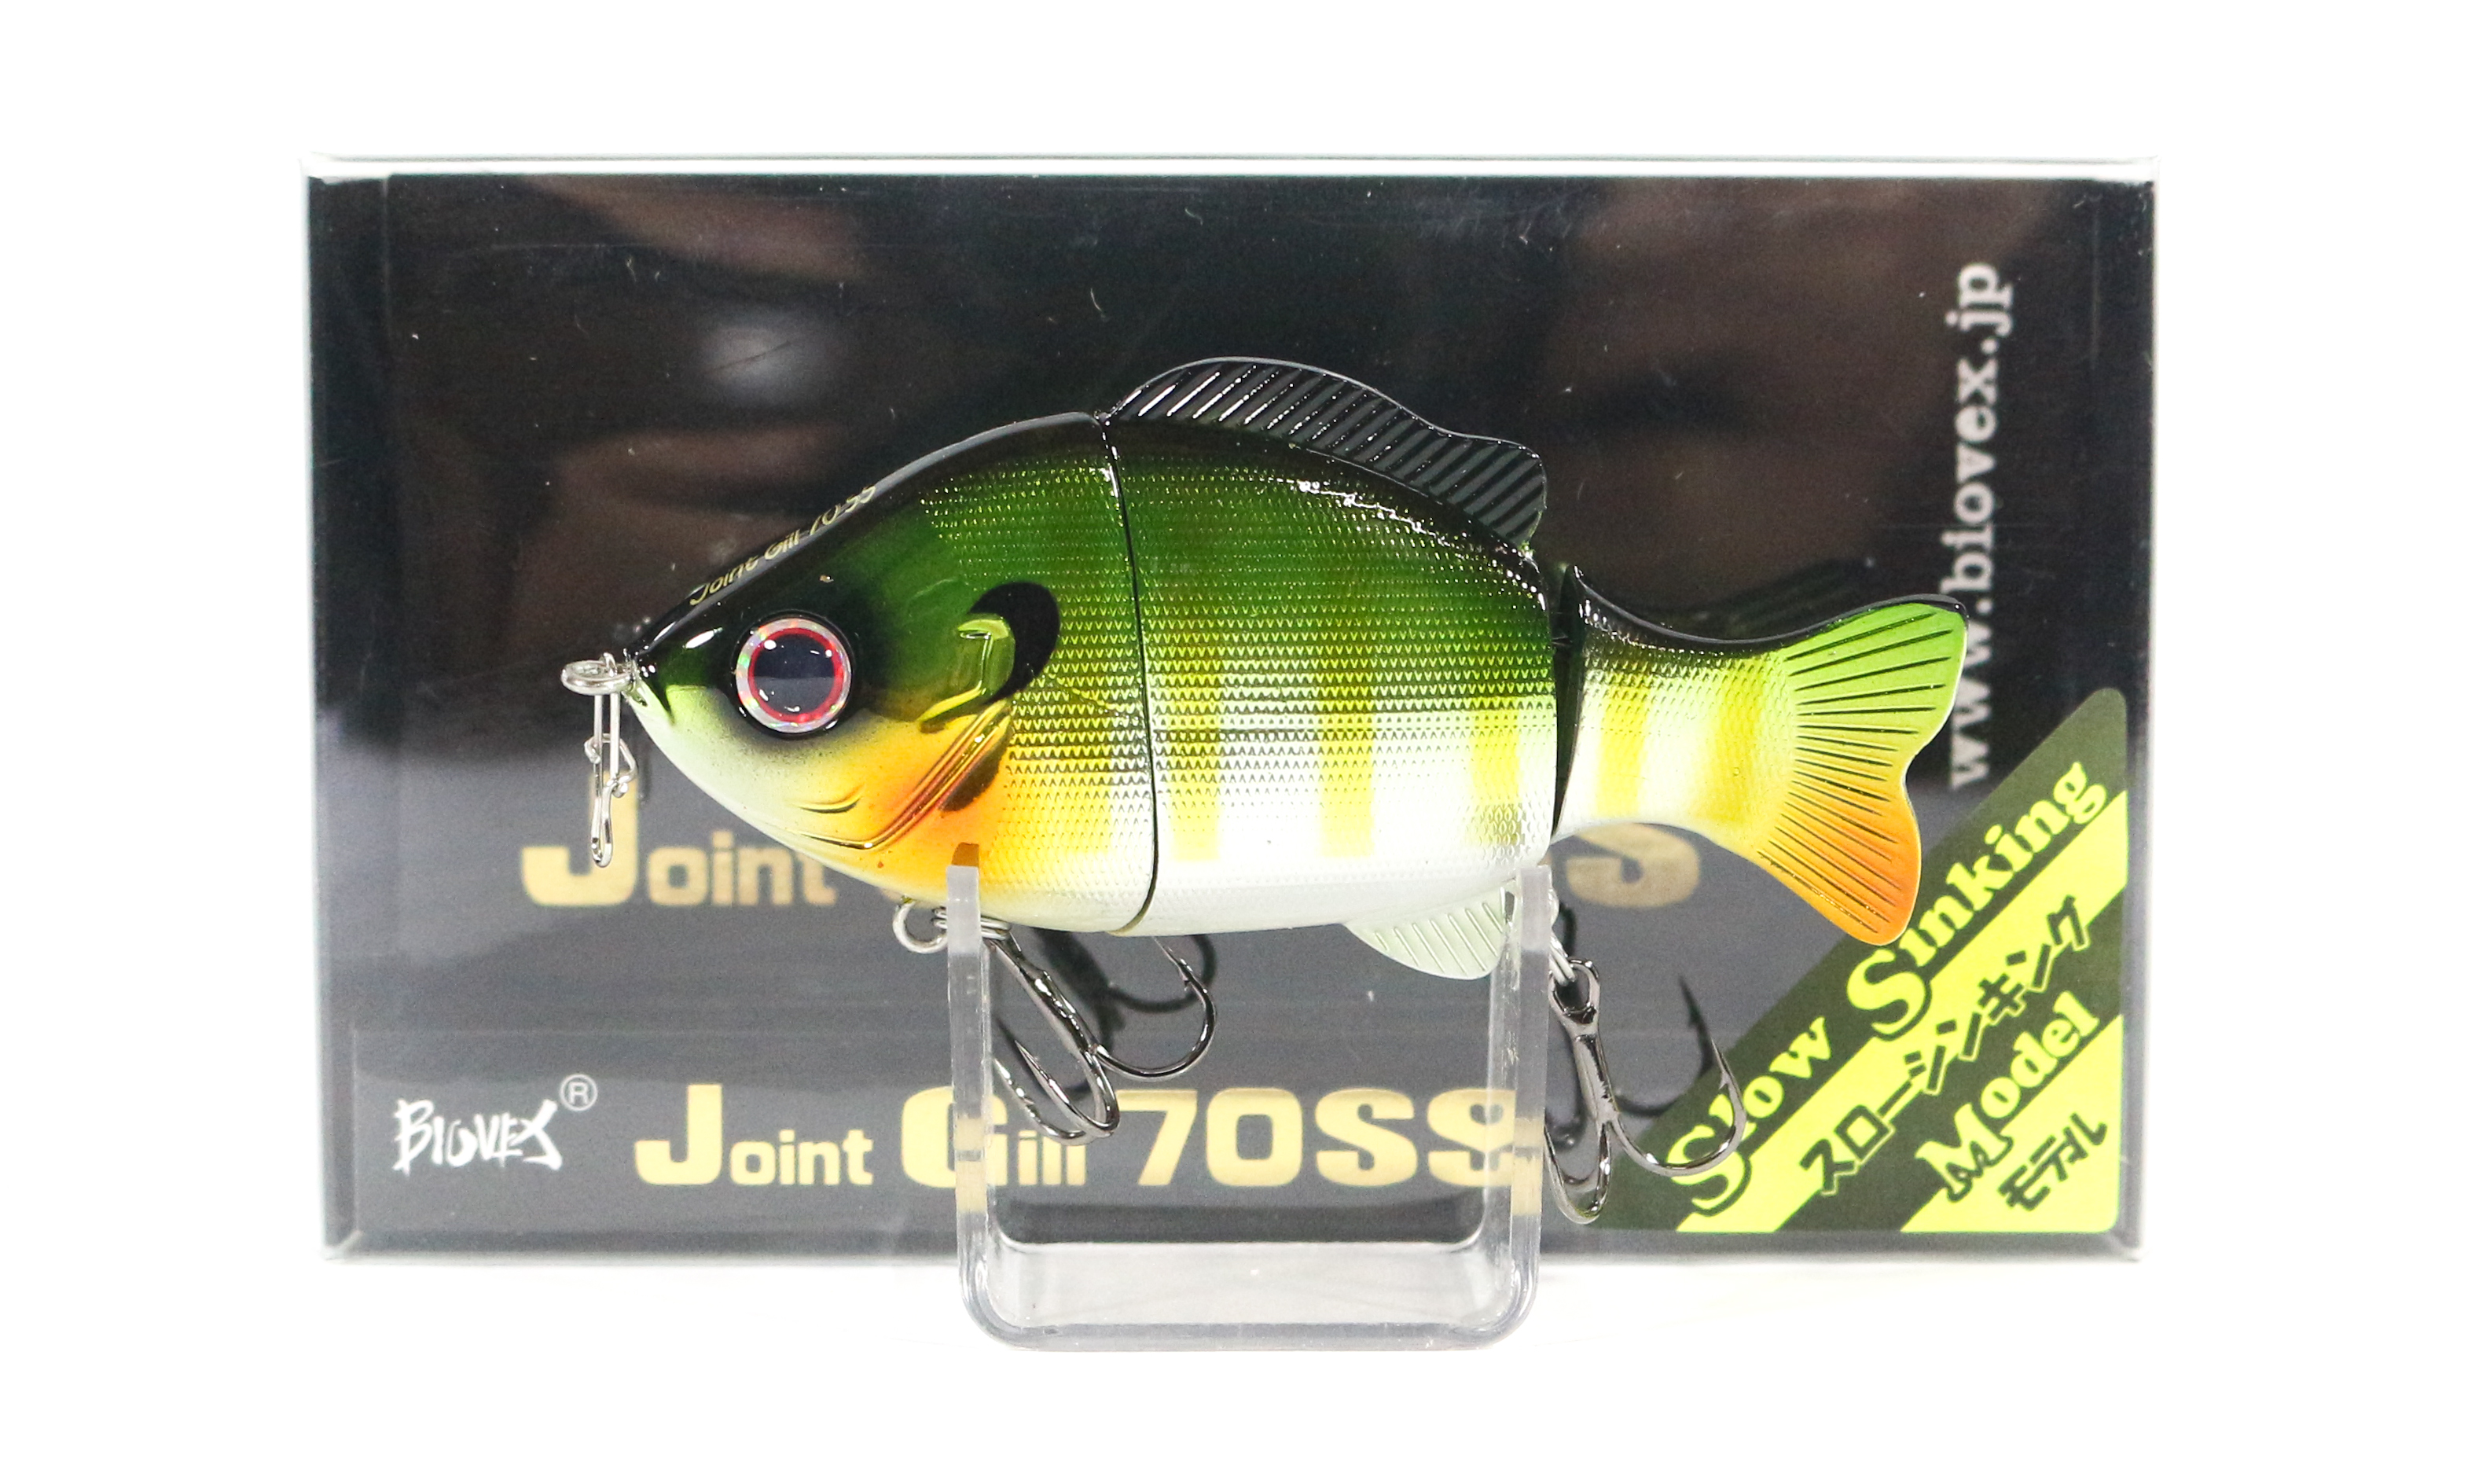 Biovex Joint Gill 70SS Flat Side Slow Sinking Lure 76 (4359)